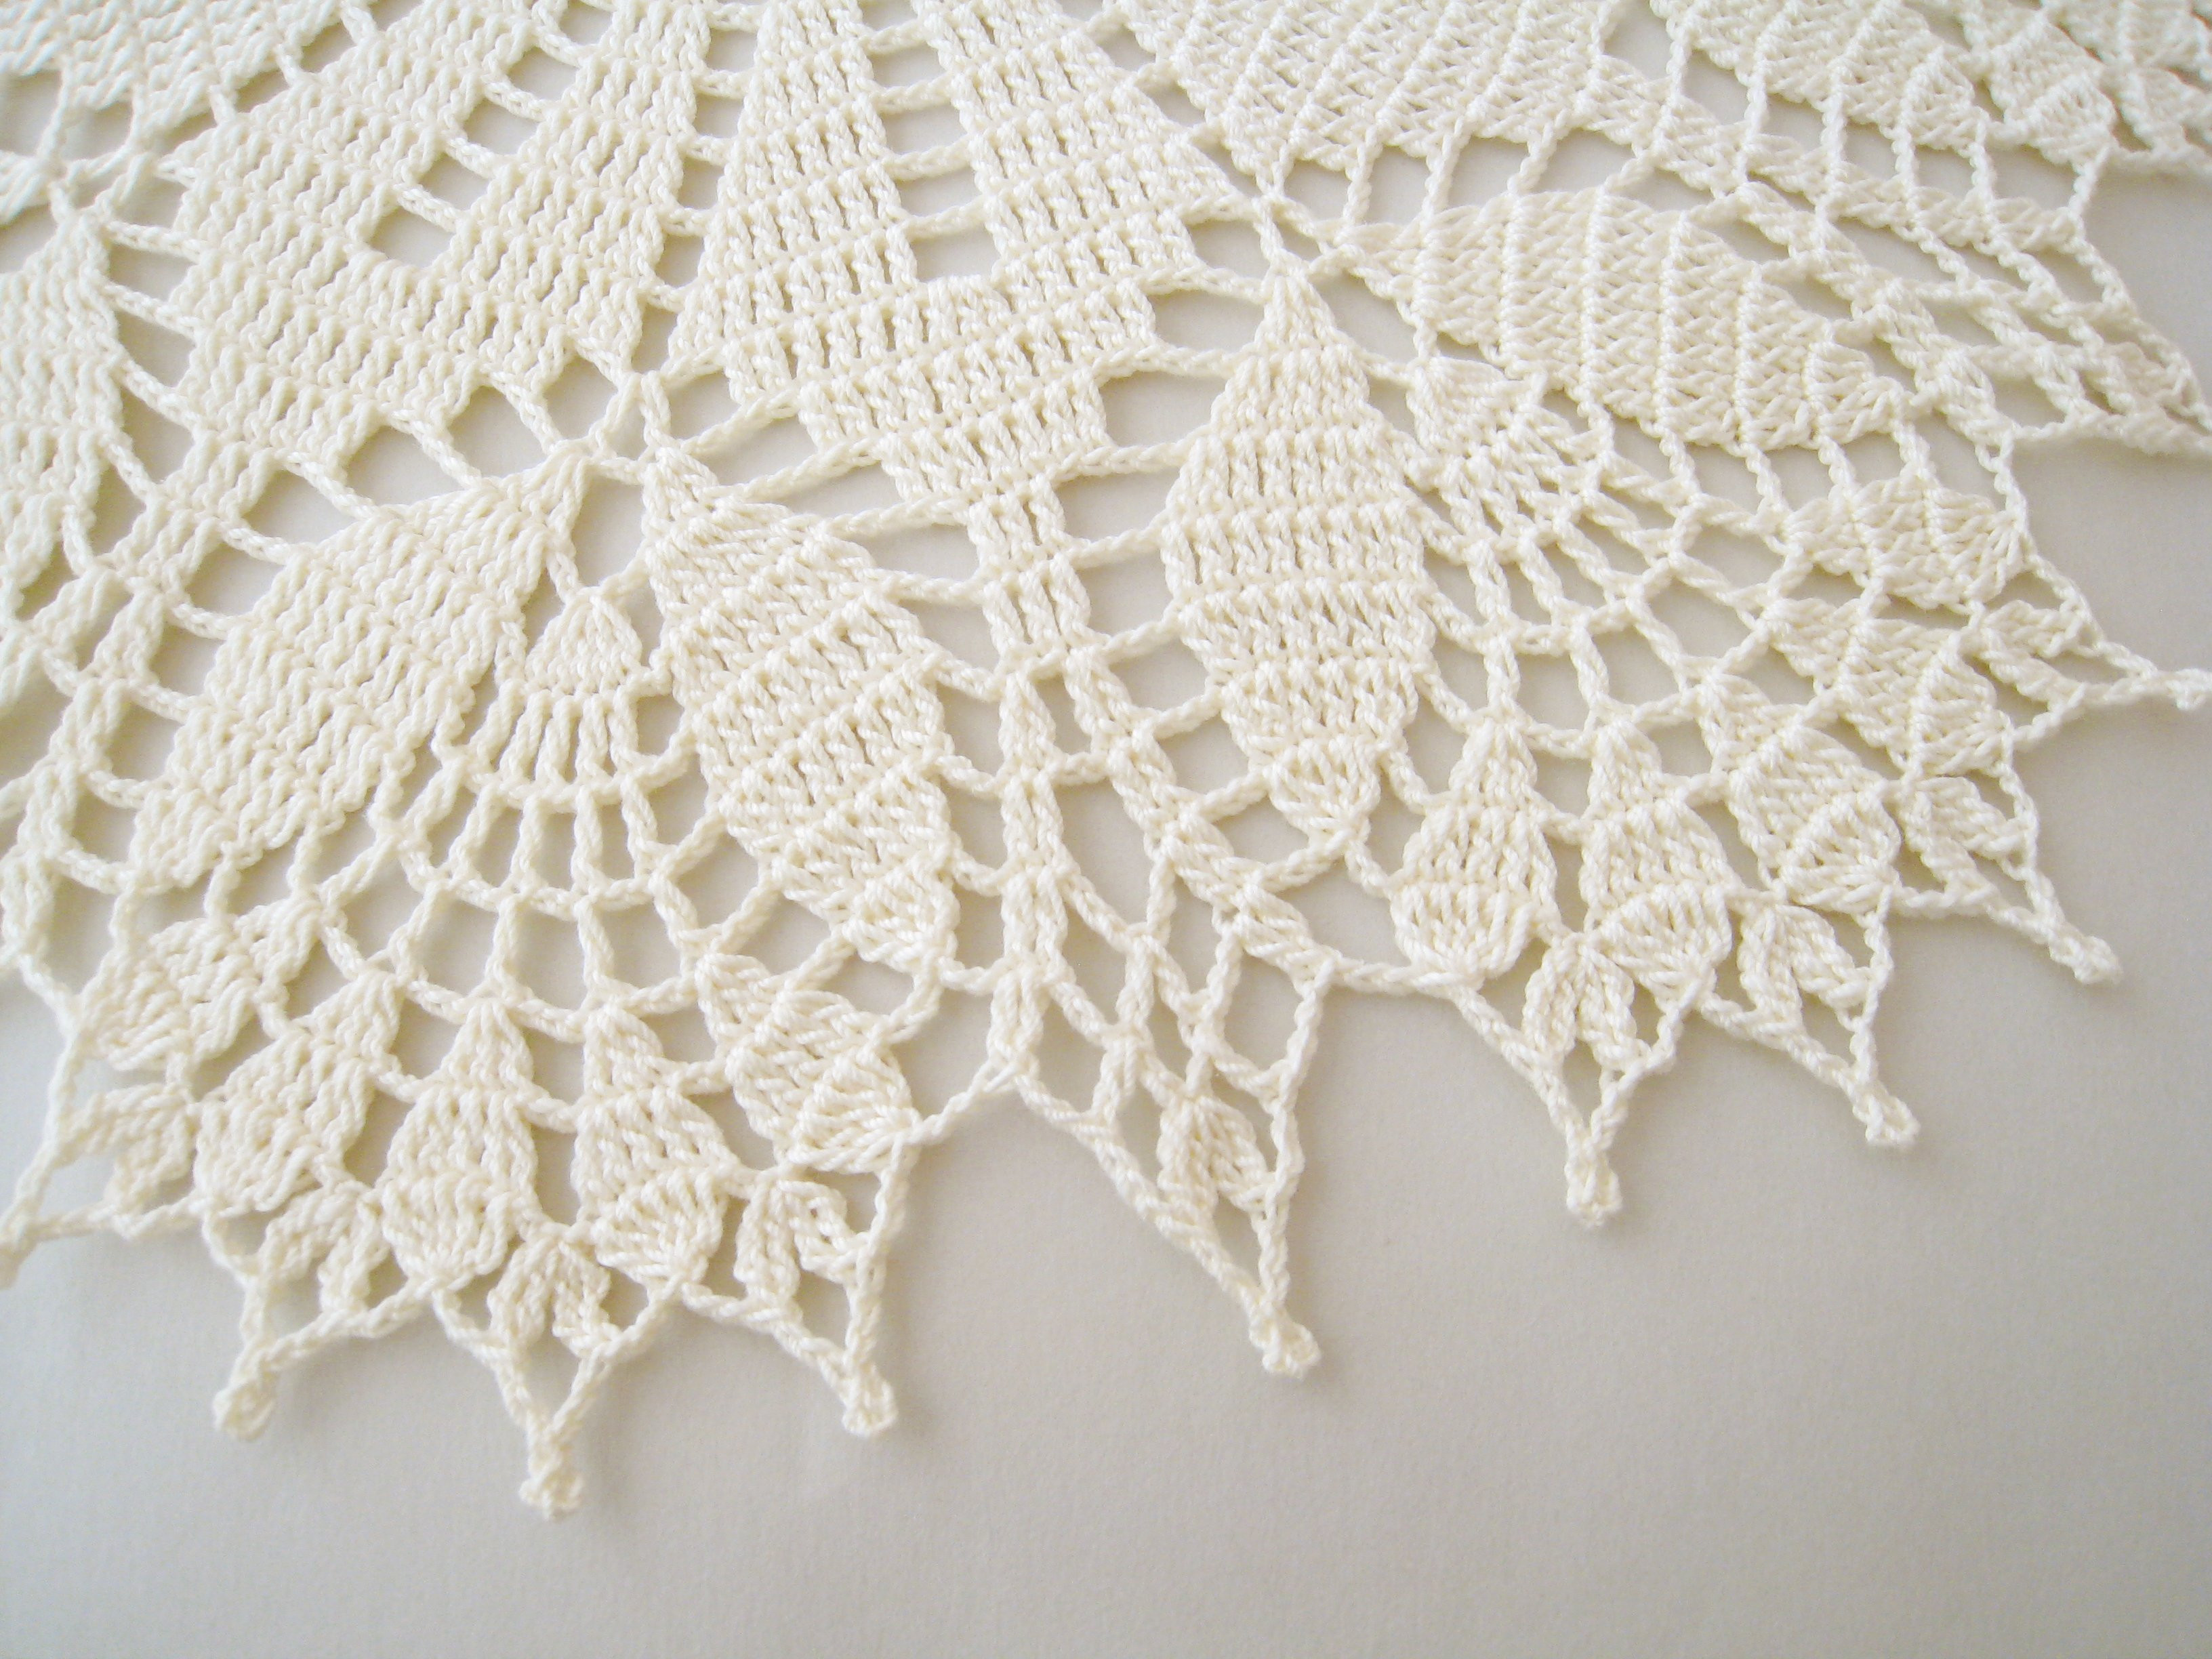 Doily Tablecloth Elegant Dosymphony Crochet Doily Cream Tulip Flower Lace Of Charming 49 Pictures Doily Tablecloth